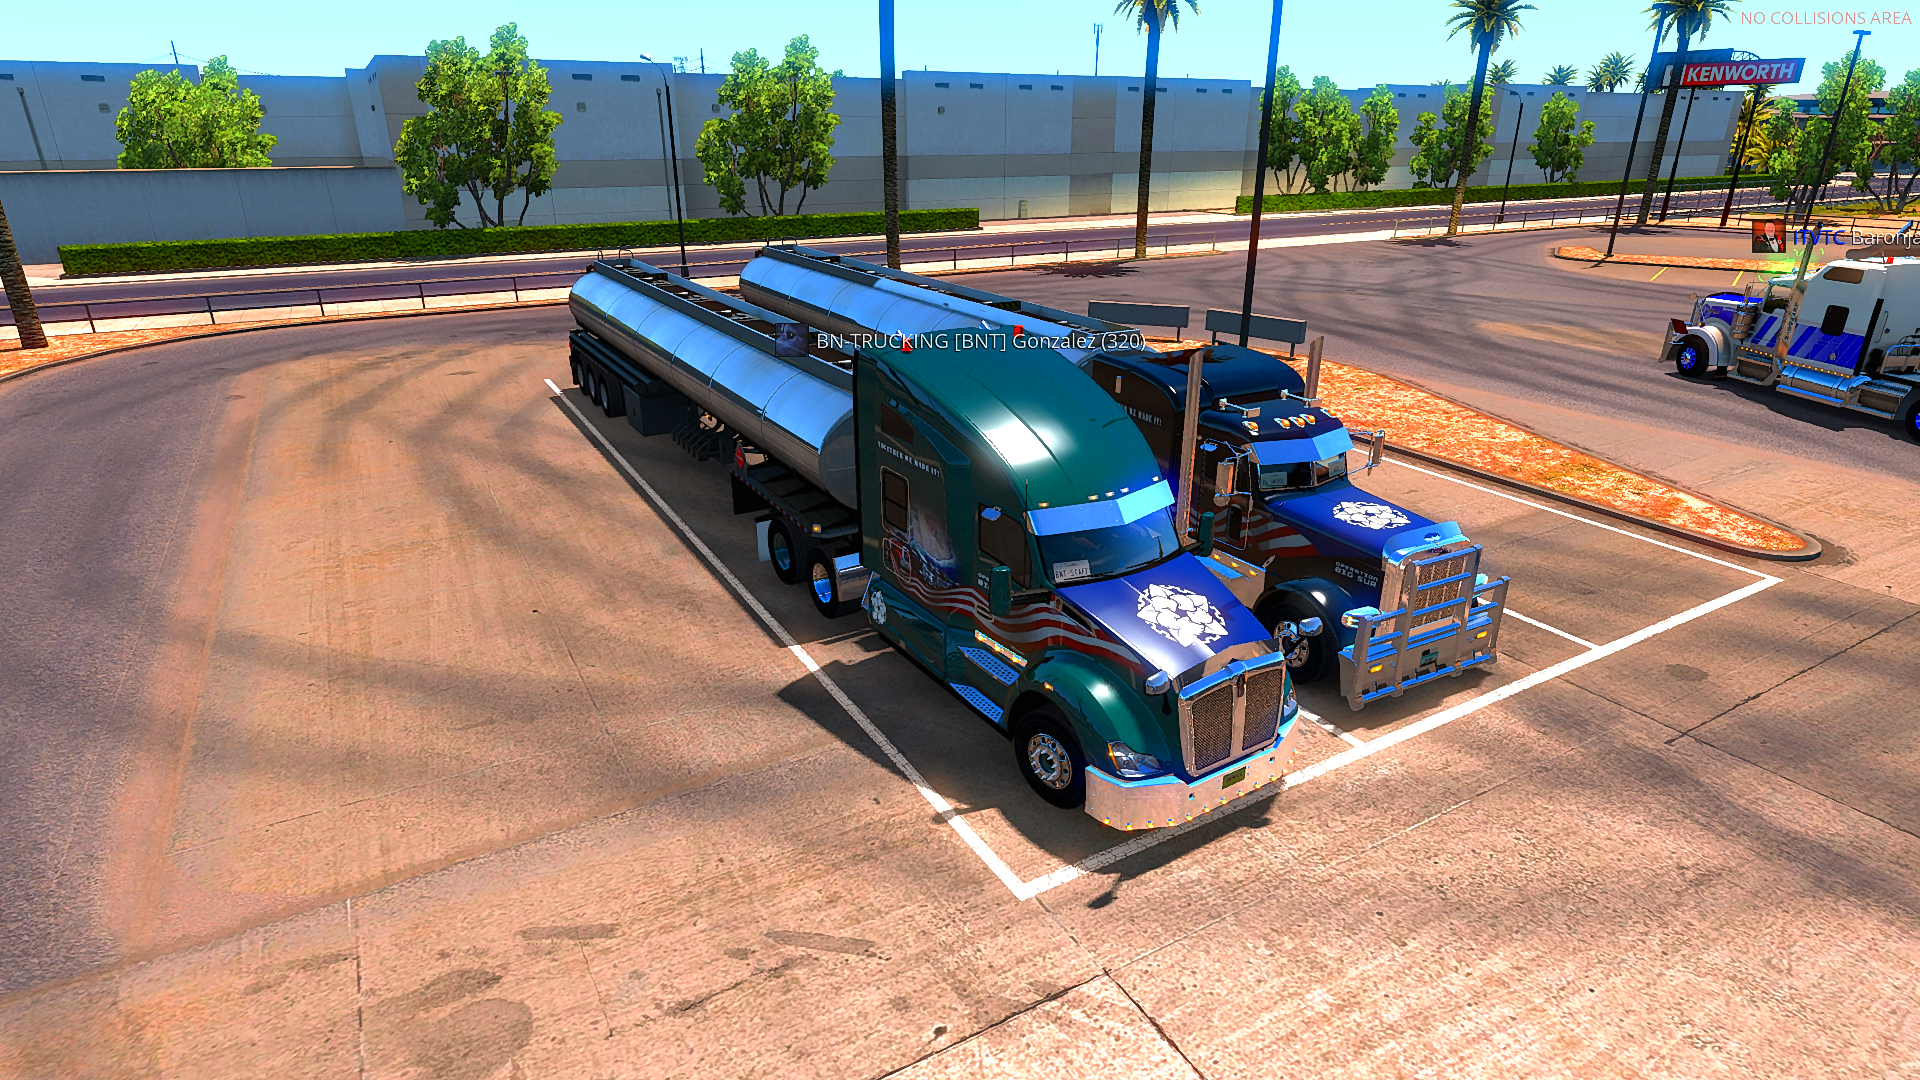 amtrucks_2018-07-04_21-40-57.png